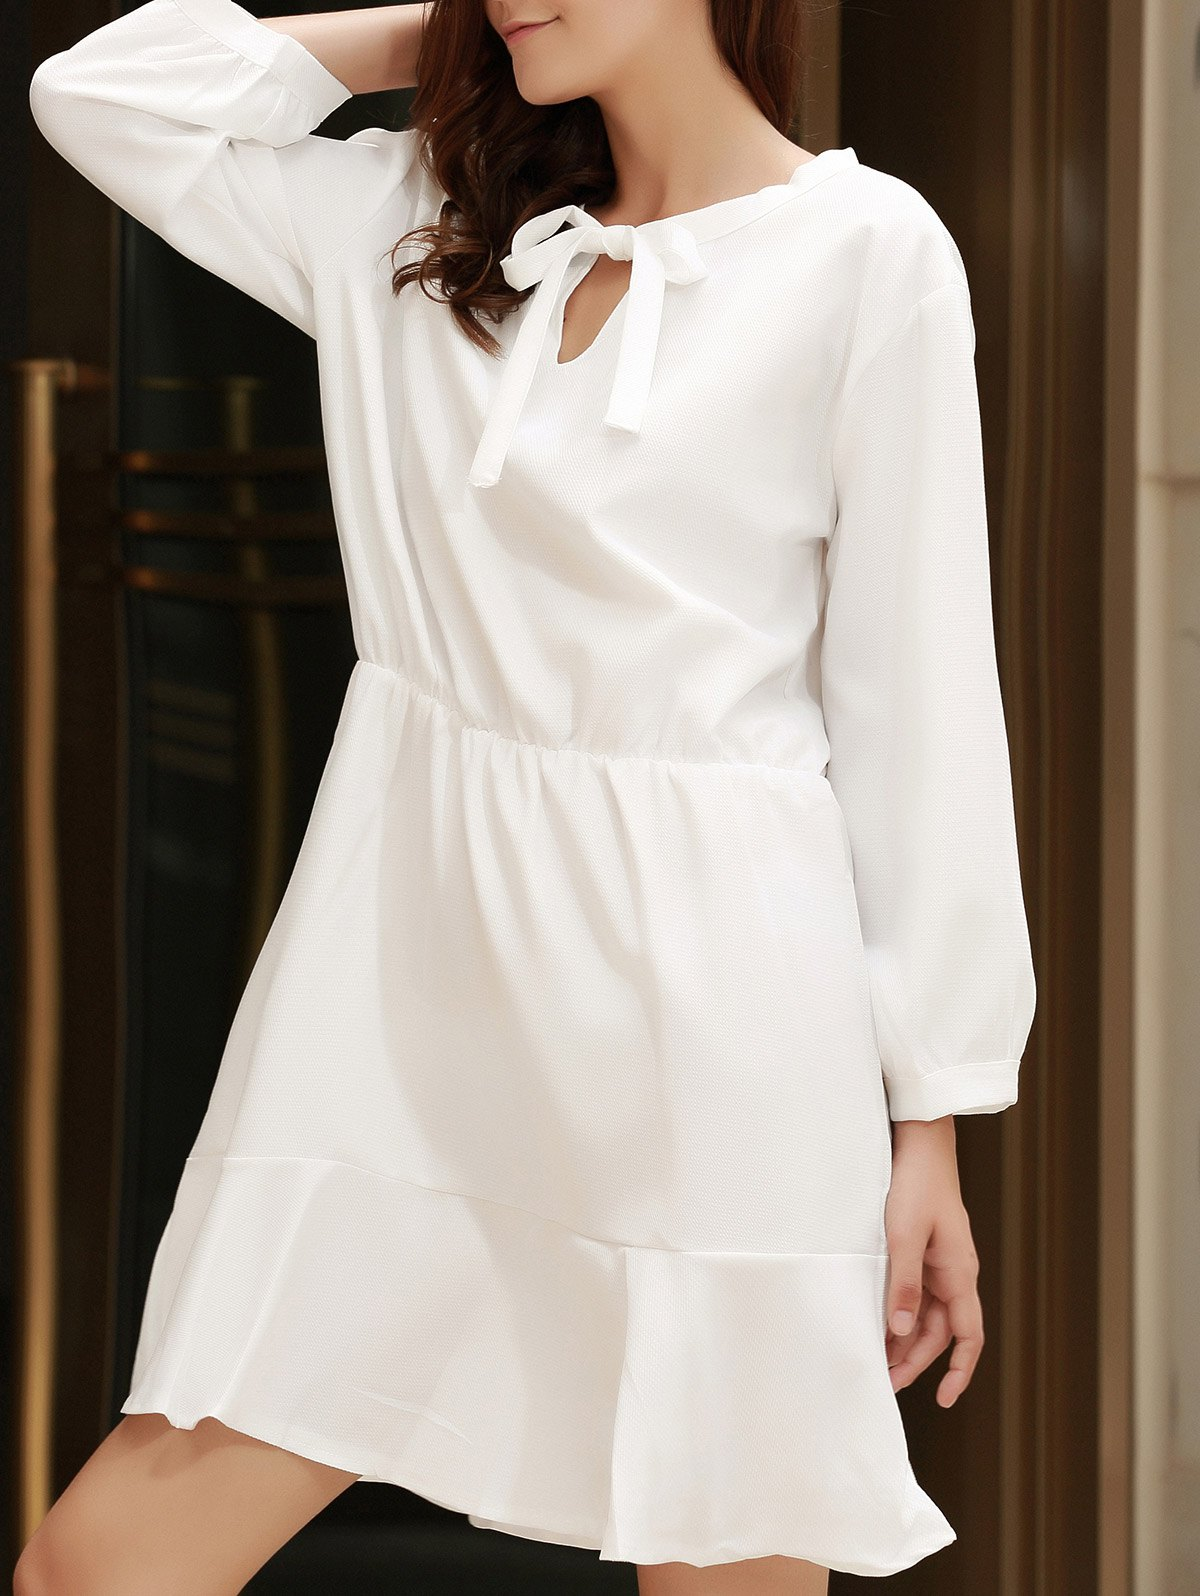 Stylish Bow Tie Collar 3/4 Sleeve Flounced Solid Color Women's Dress - OFF WHITE 4XL